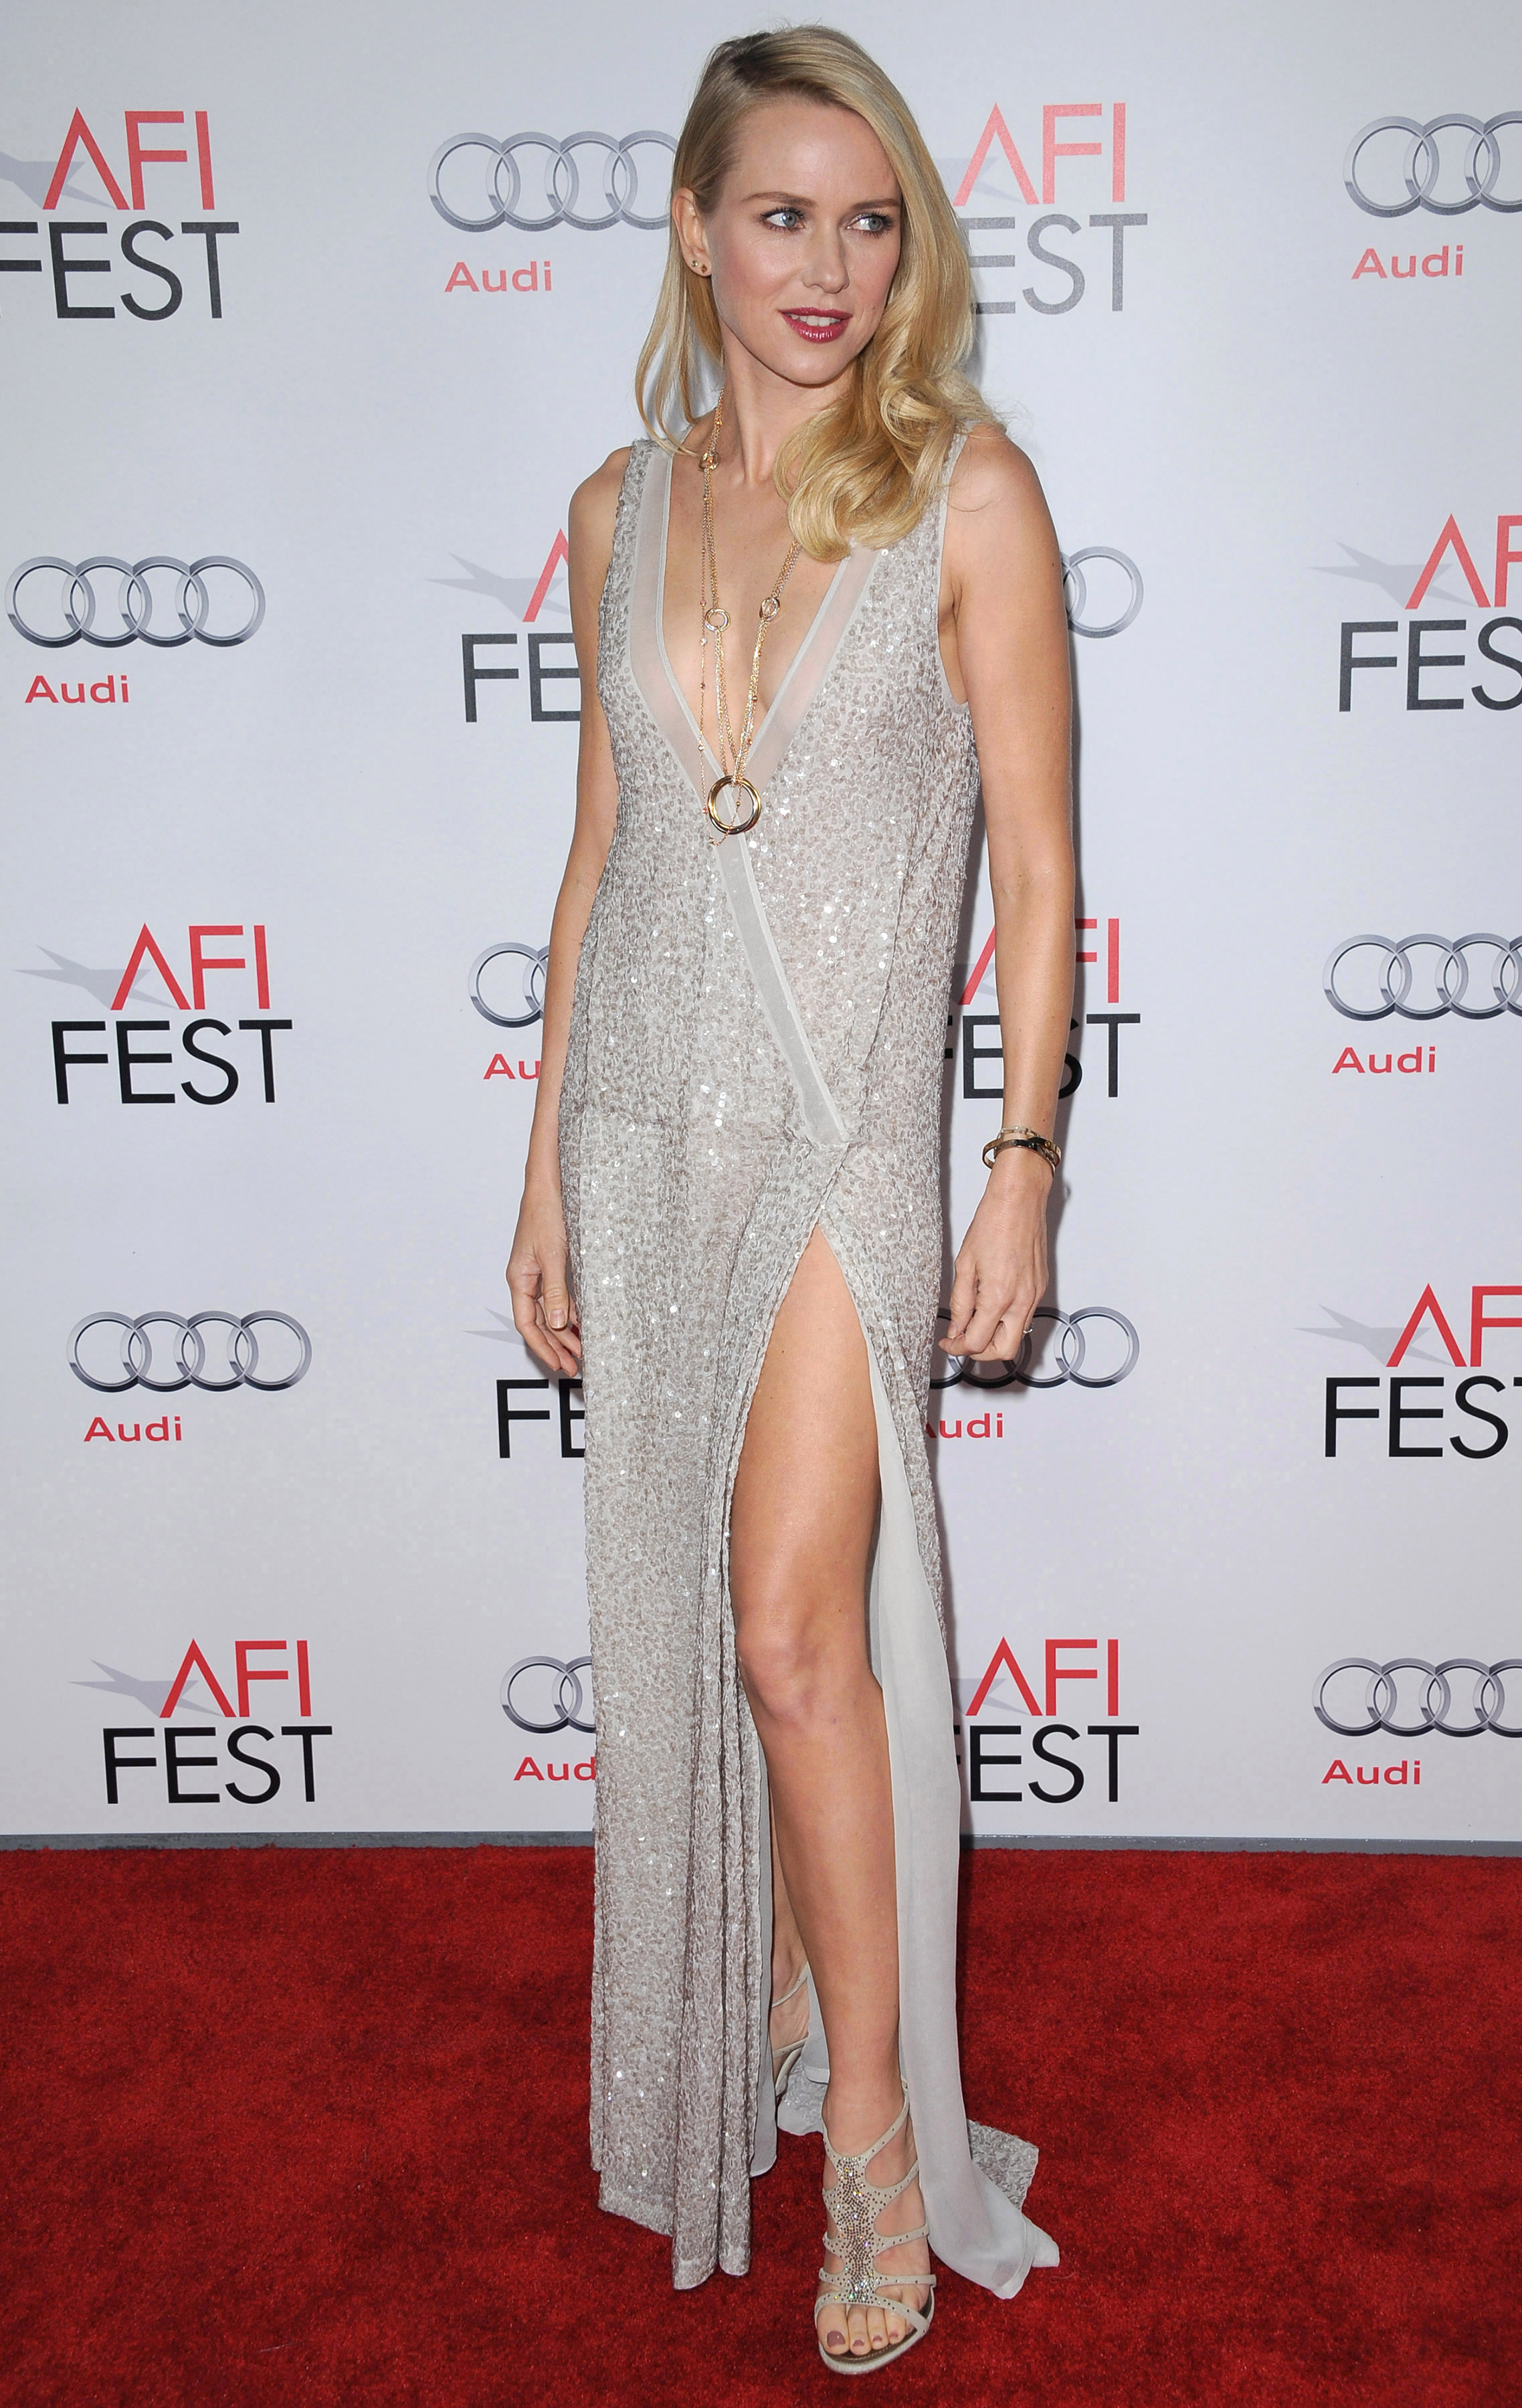 Naomi Watts – Hot in Long Dress at J Edgar Premiere-08 – GotCeleb